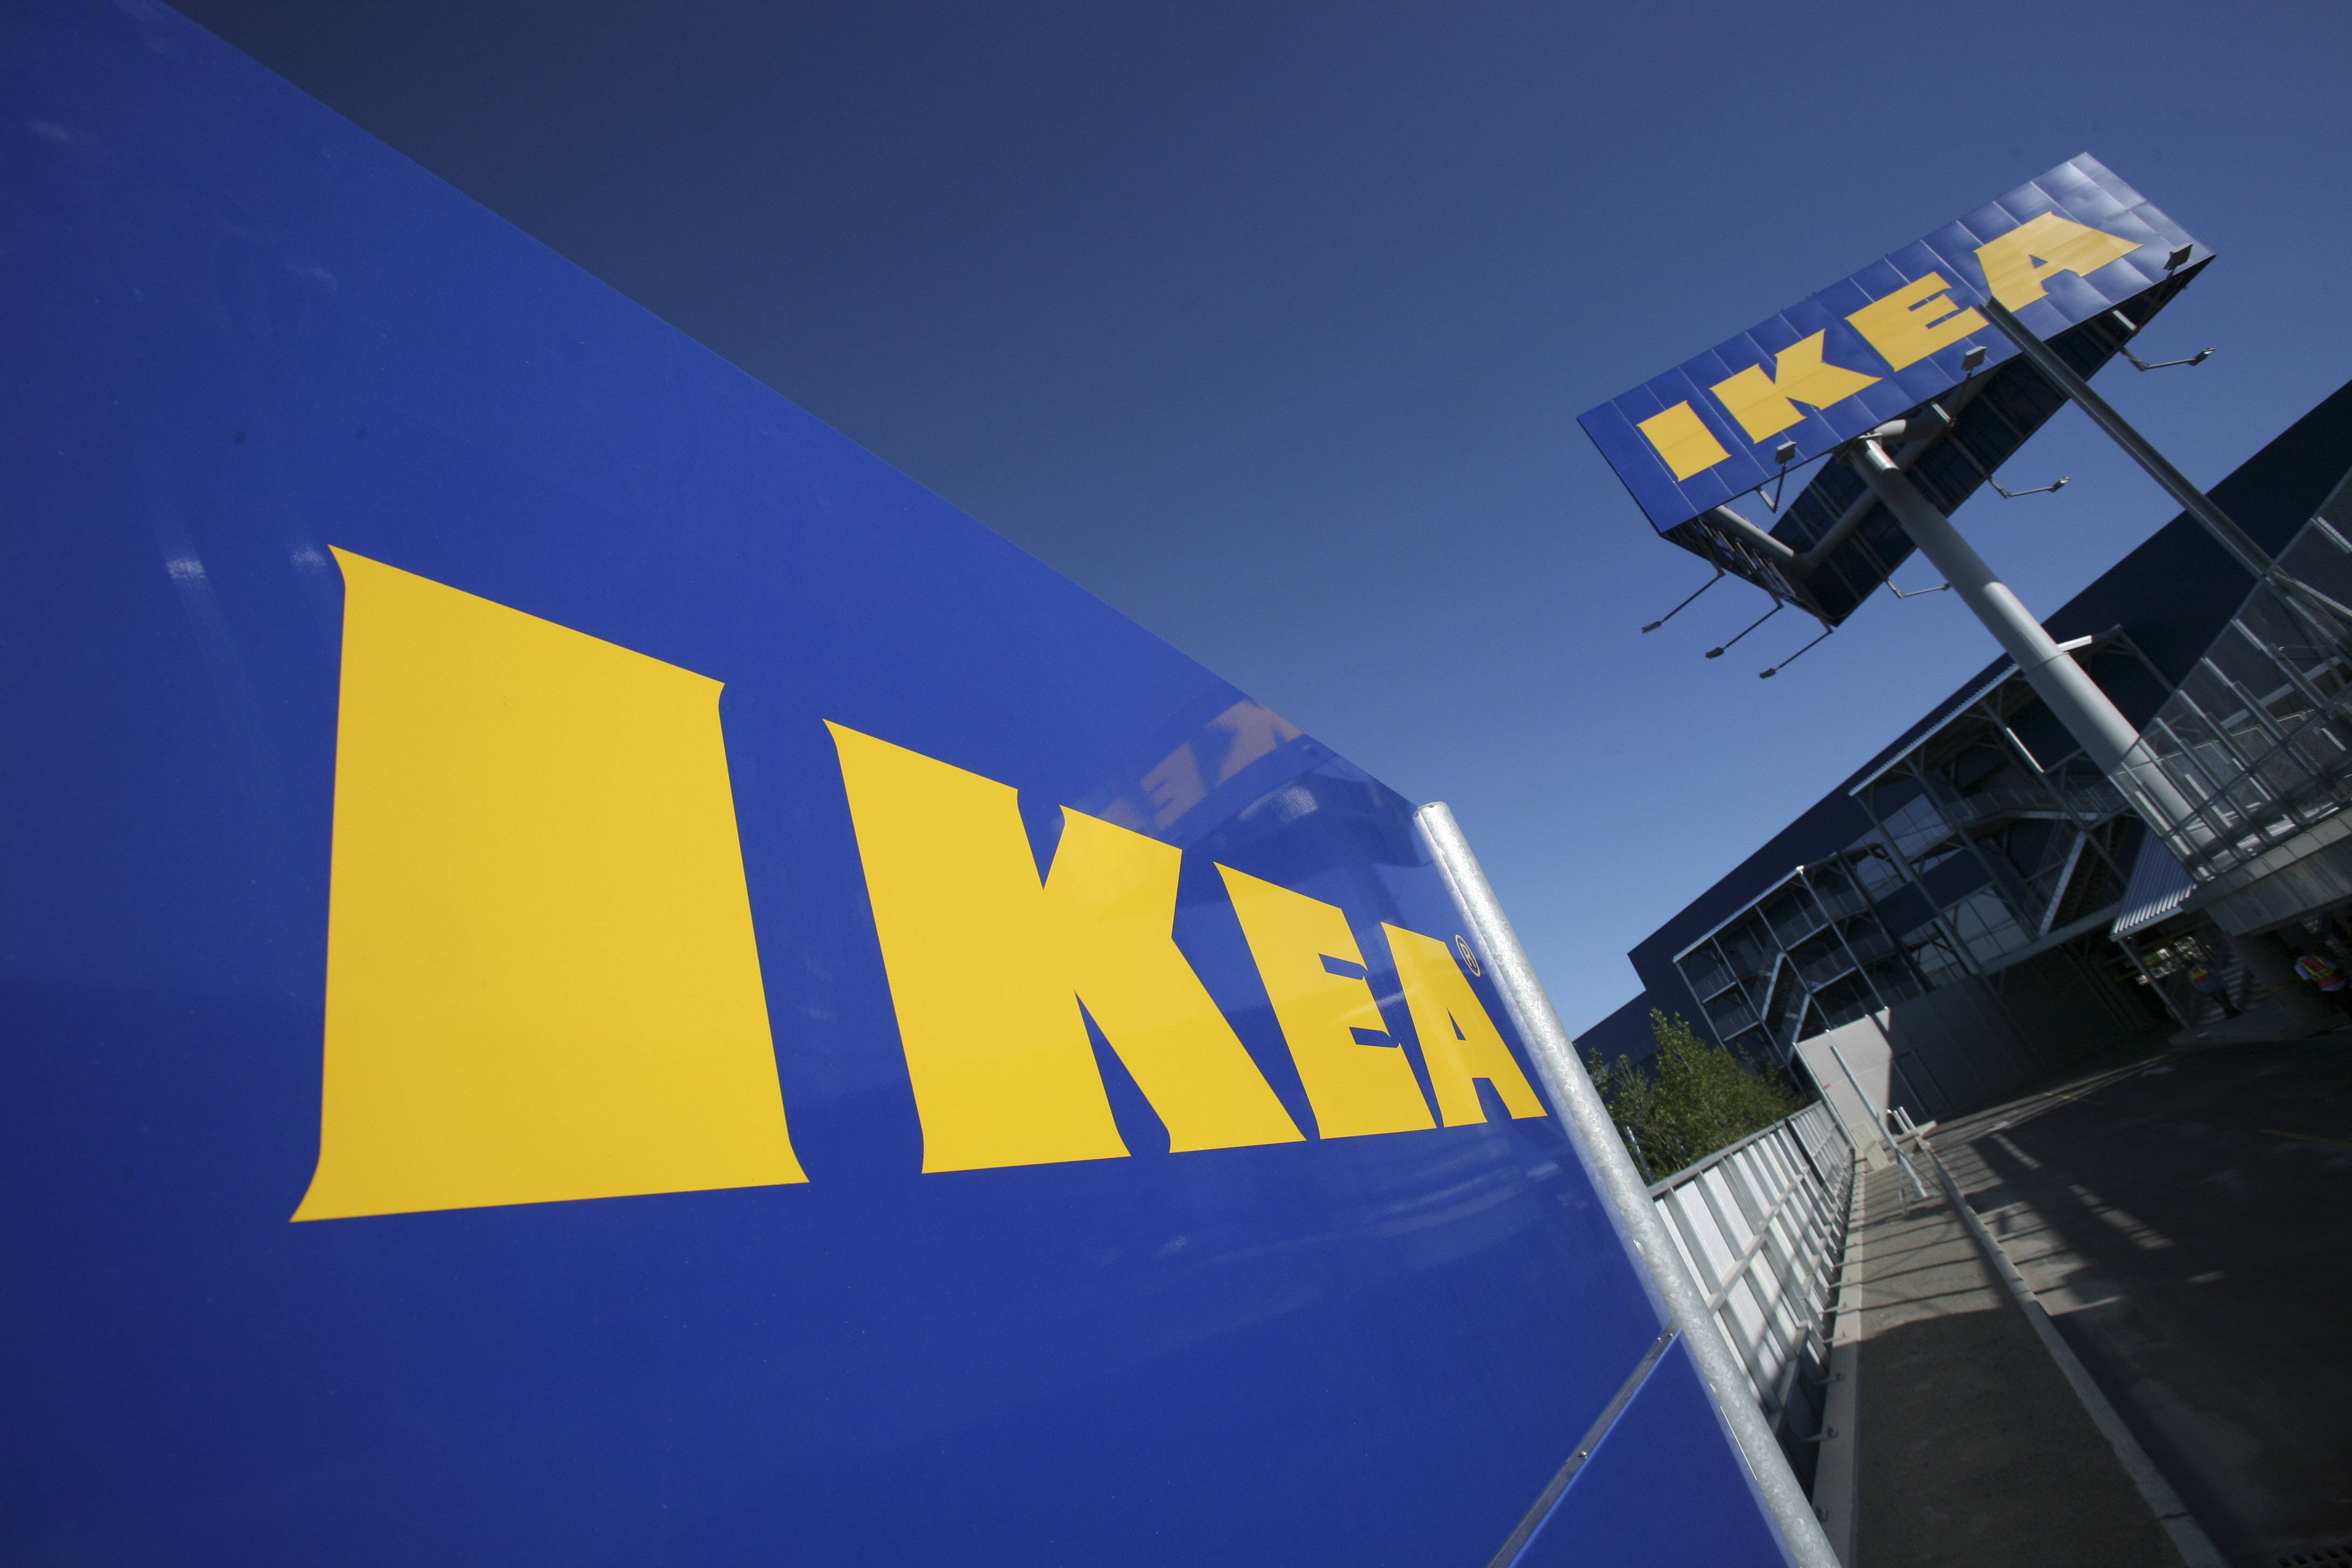 IKEA proposes to double size of distribution hub in Joliet